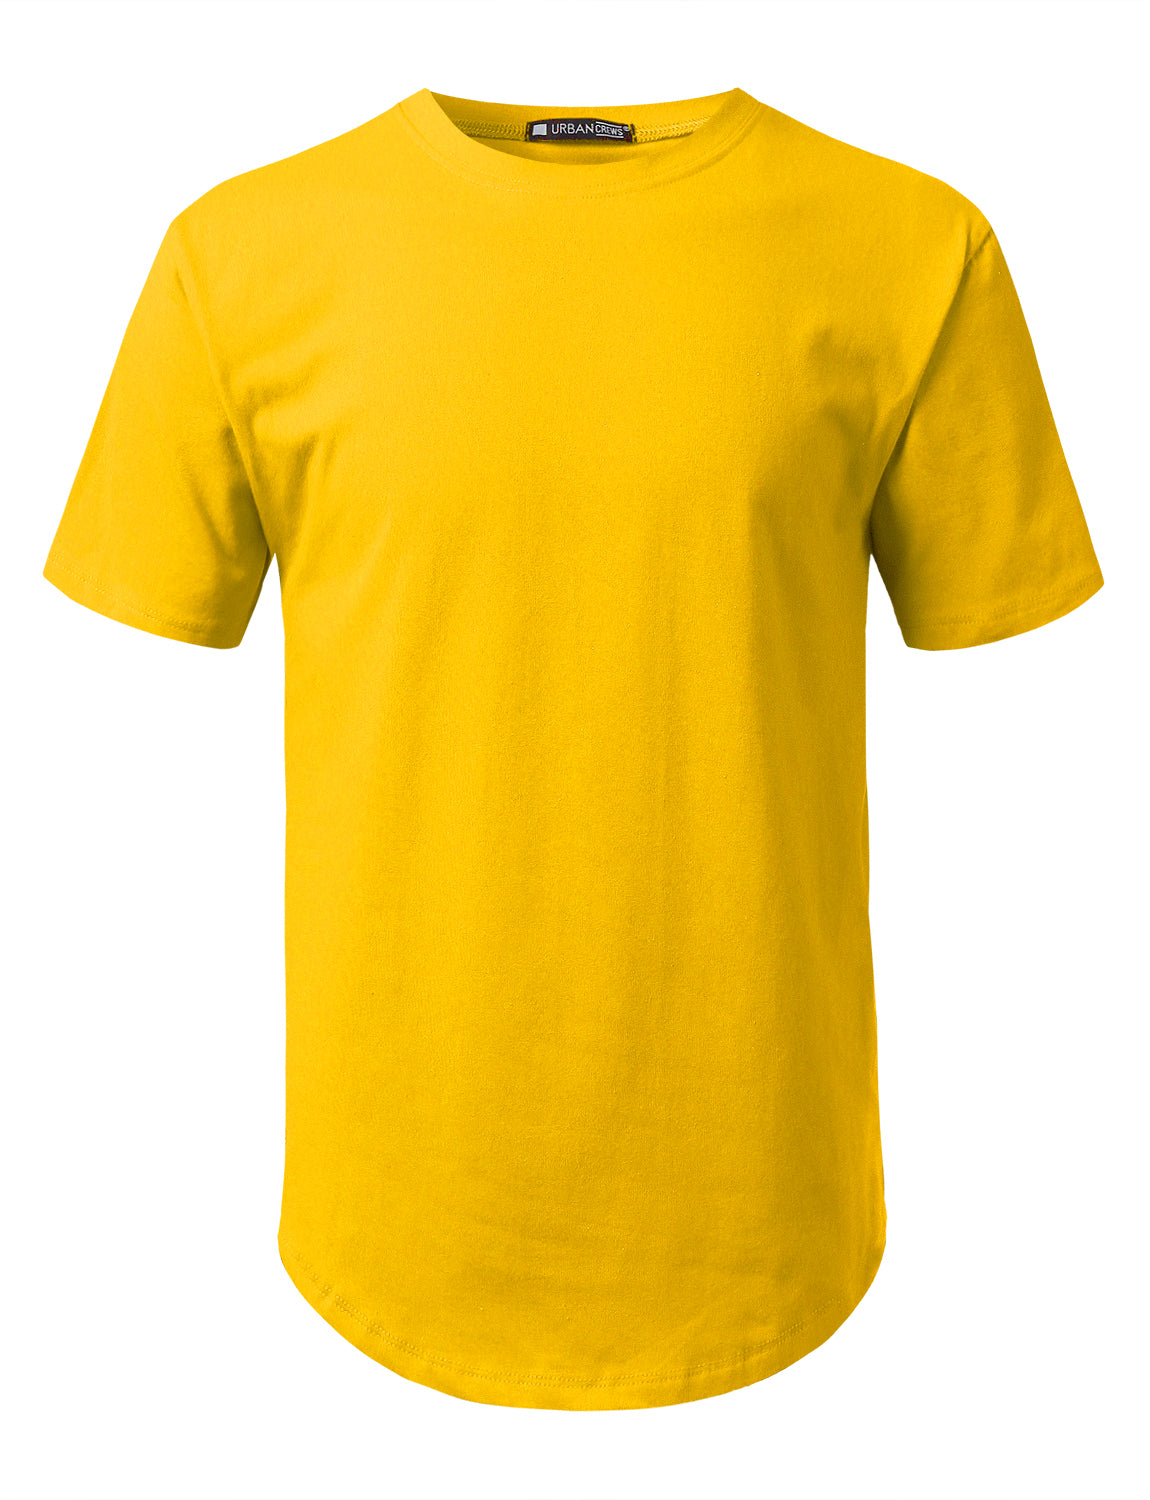 YELLOW Solid Color Cotton T-shirt - URBANCREWS